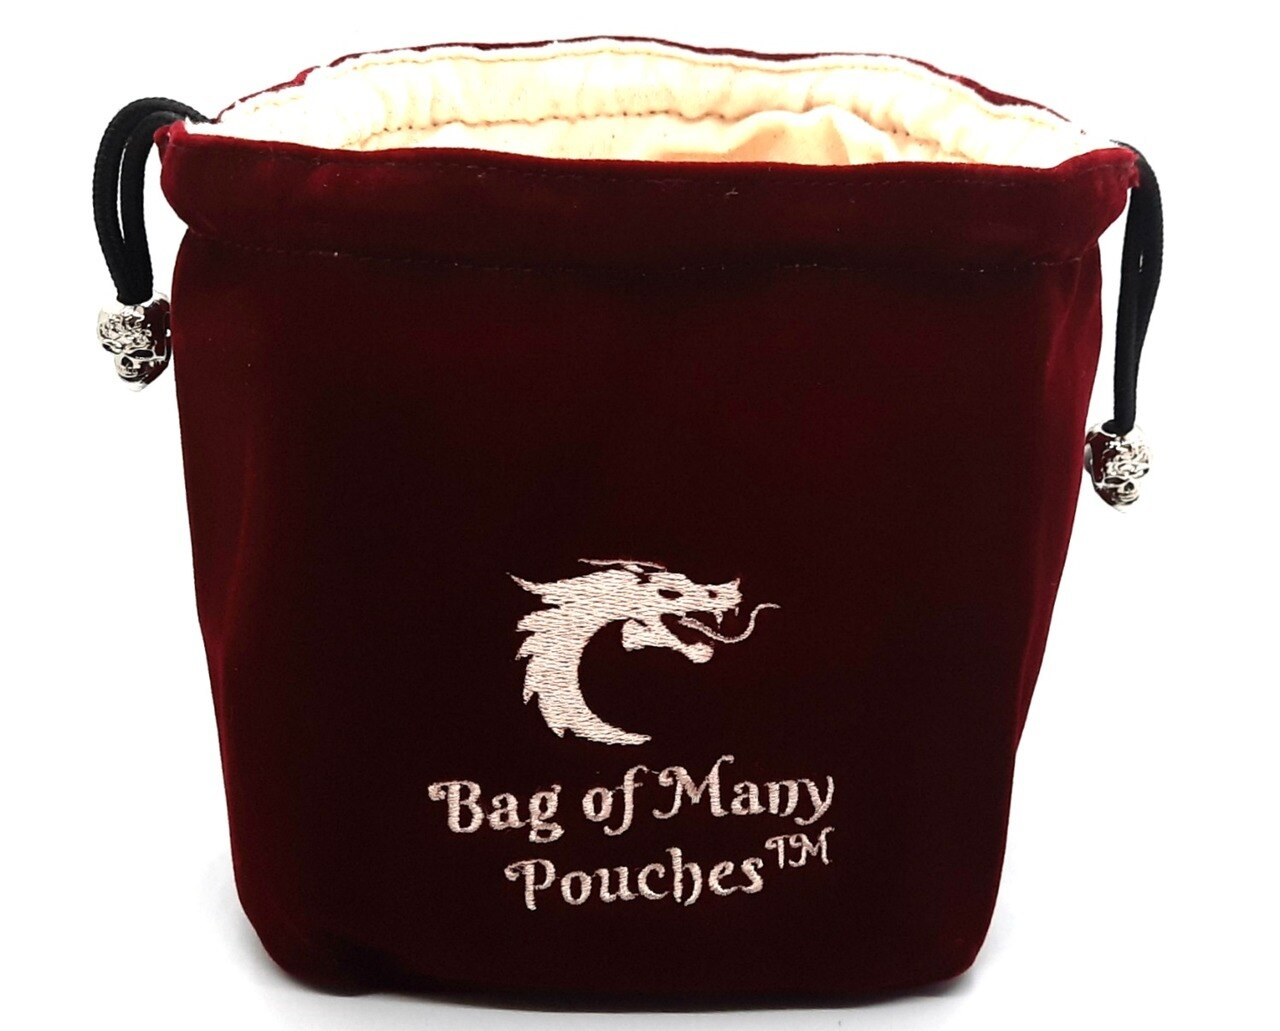 Bag of Many Pouches: Wine